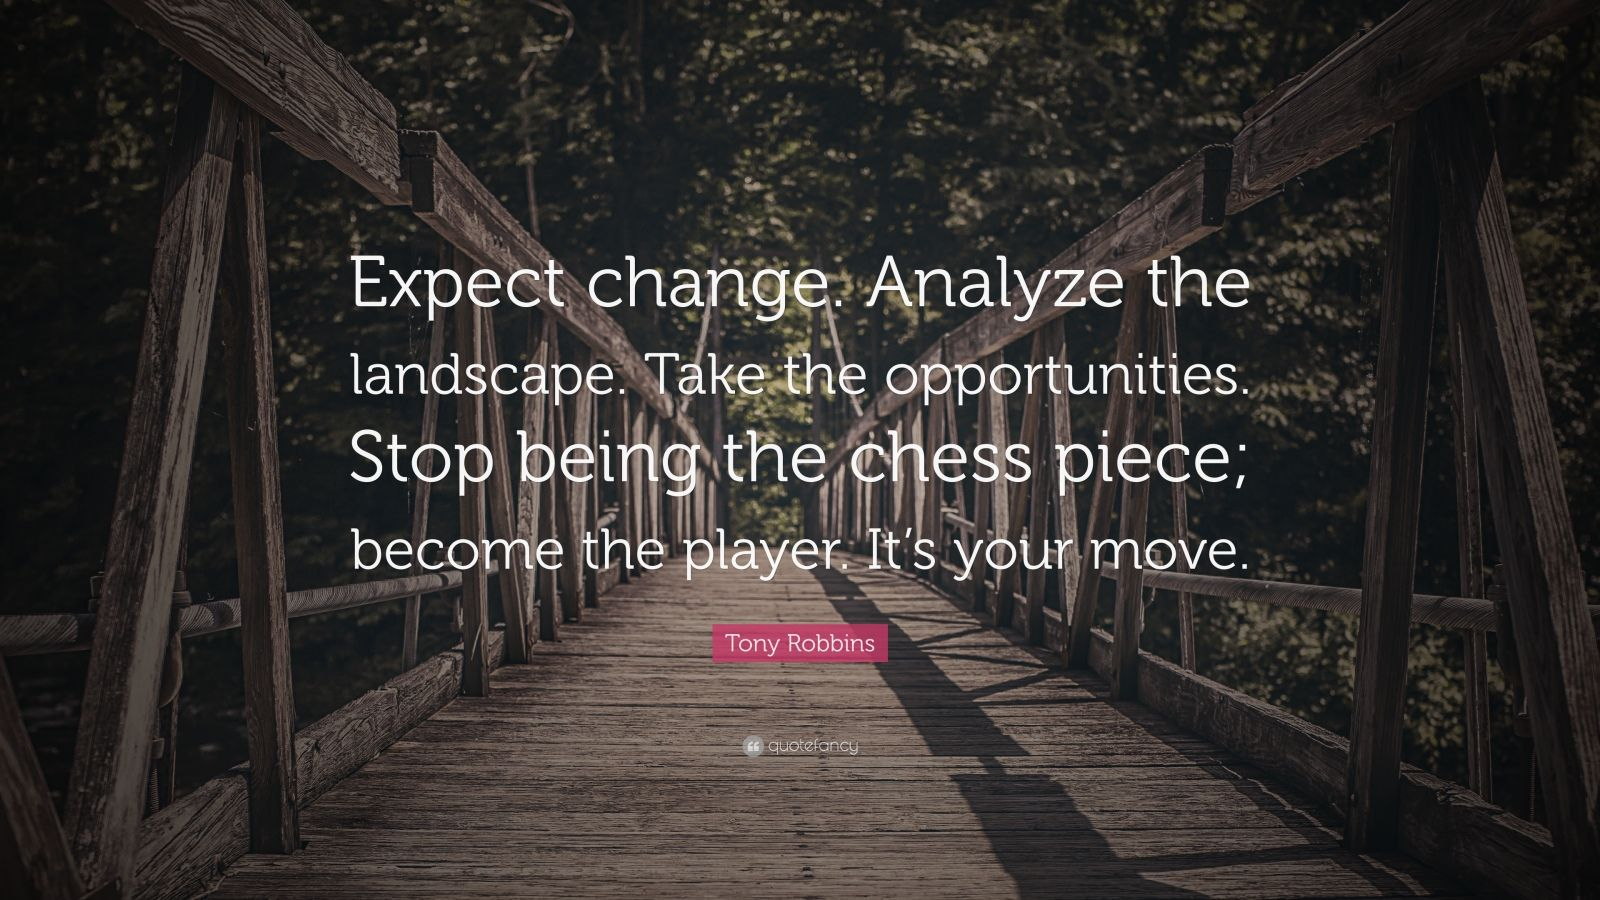 """Opportunity Quotes: """"Expect change. Analyze the landscape. Take the opportunities. Stop being the chess piece; become the player. It's your move."""" — Tony Robbins"""